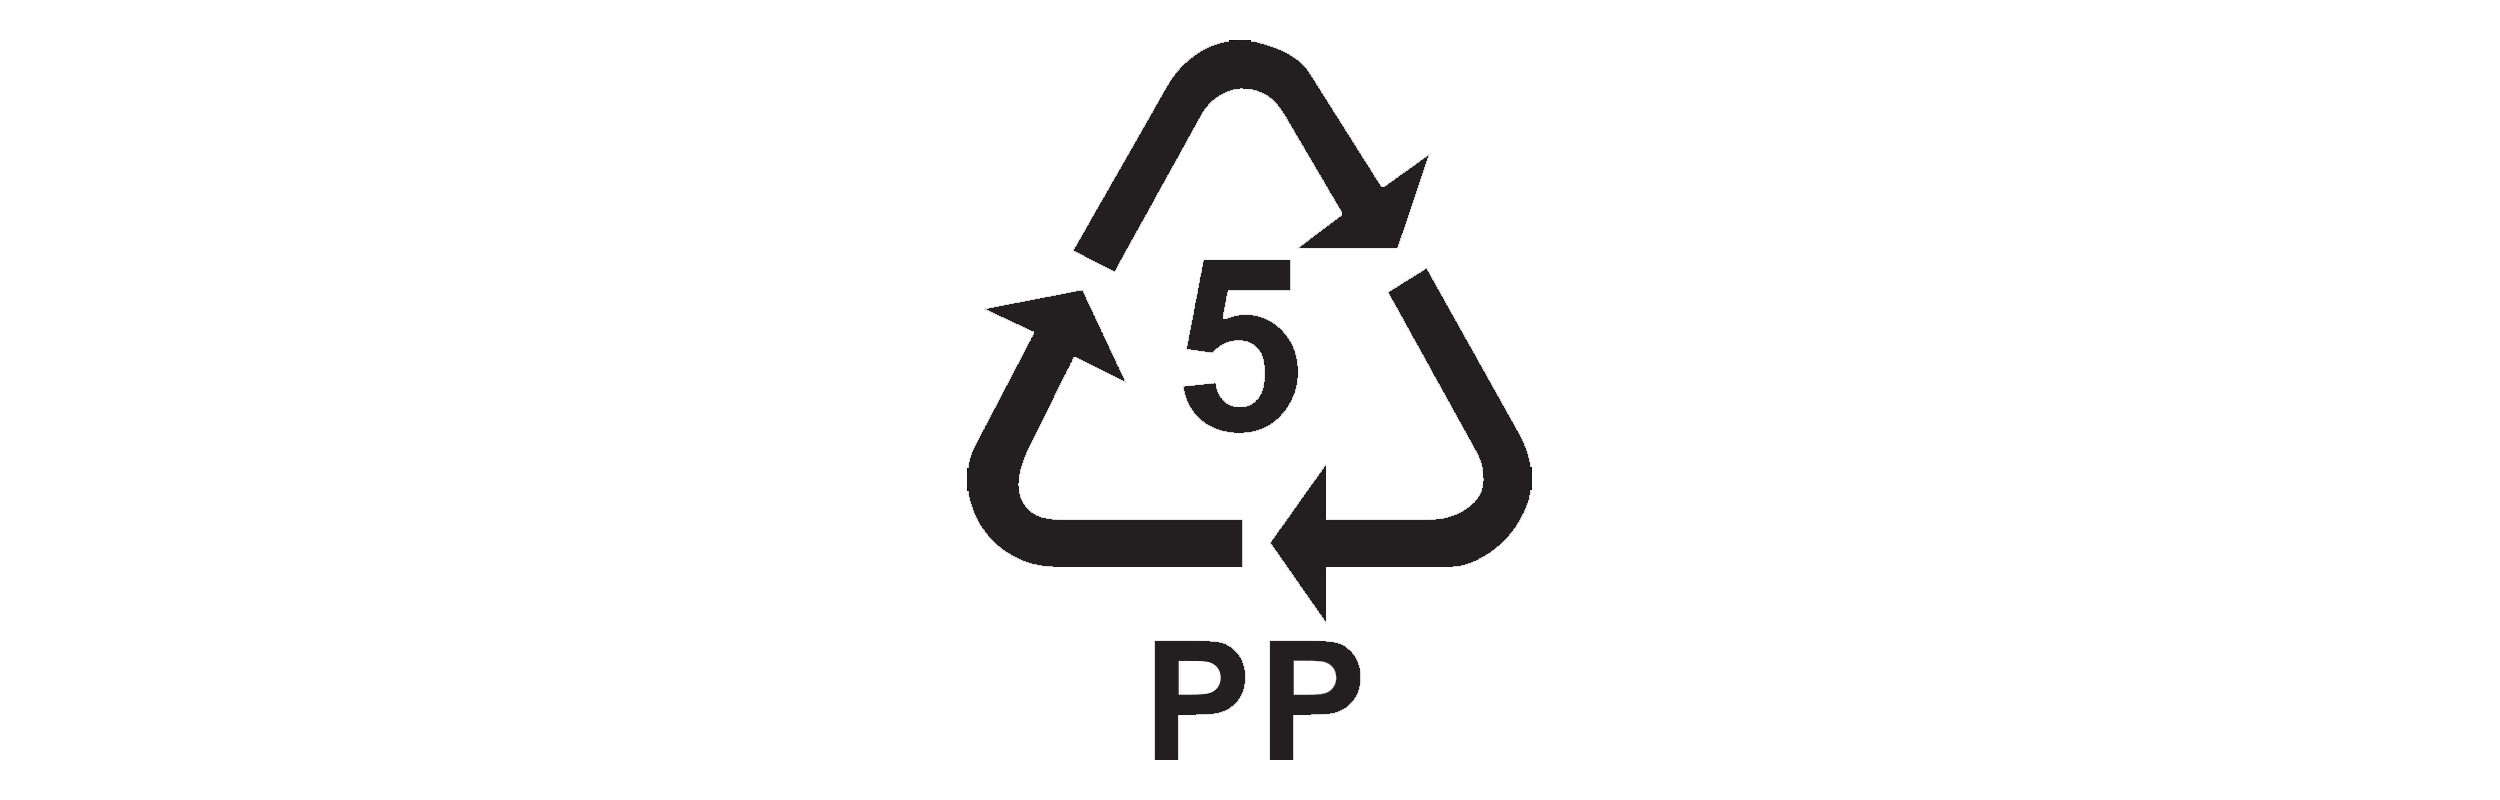 Recycling code 5 for Polypropylene